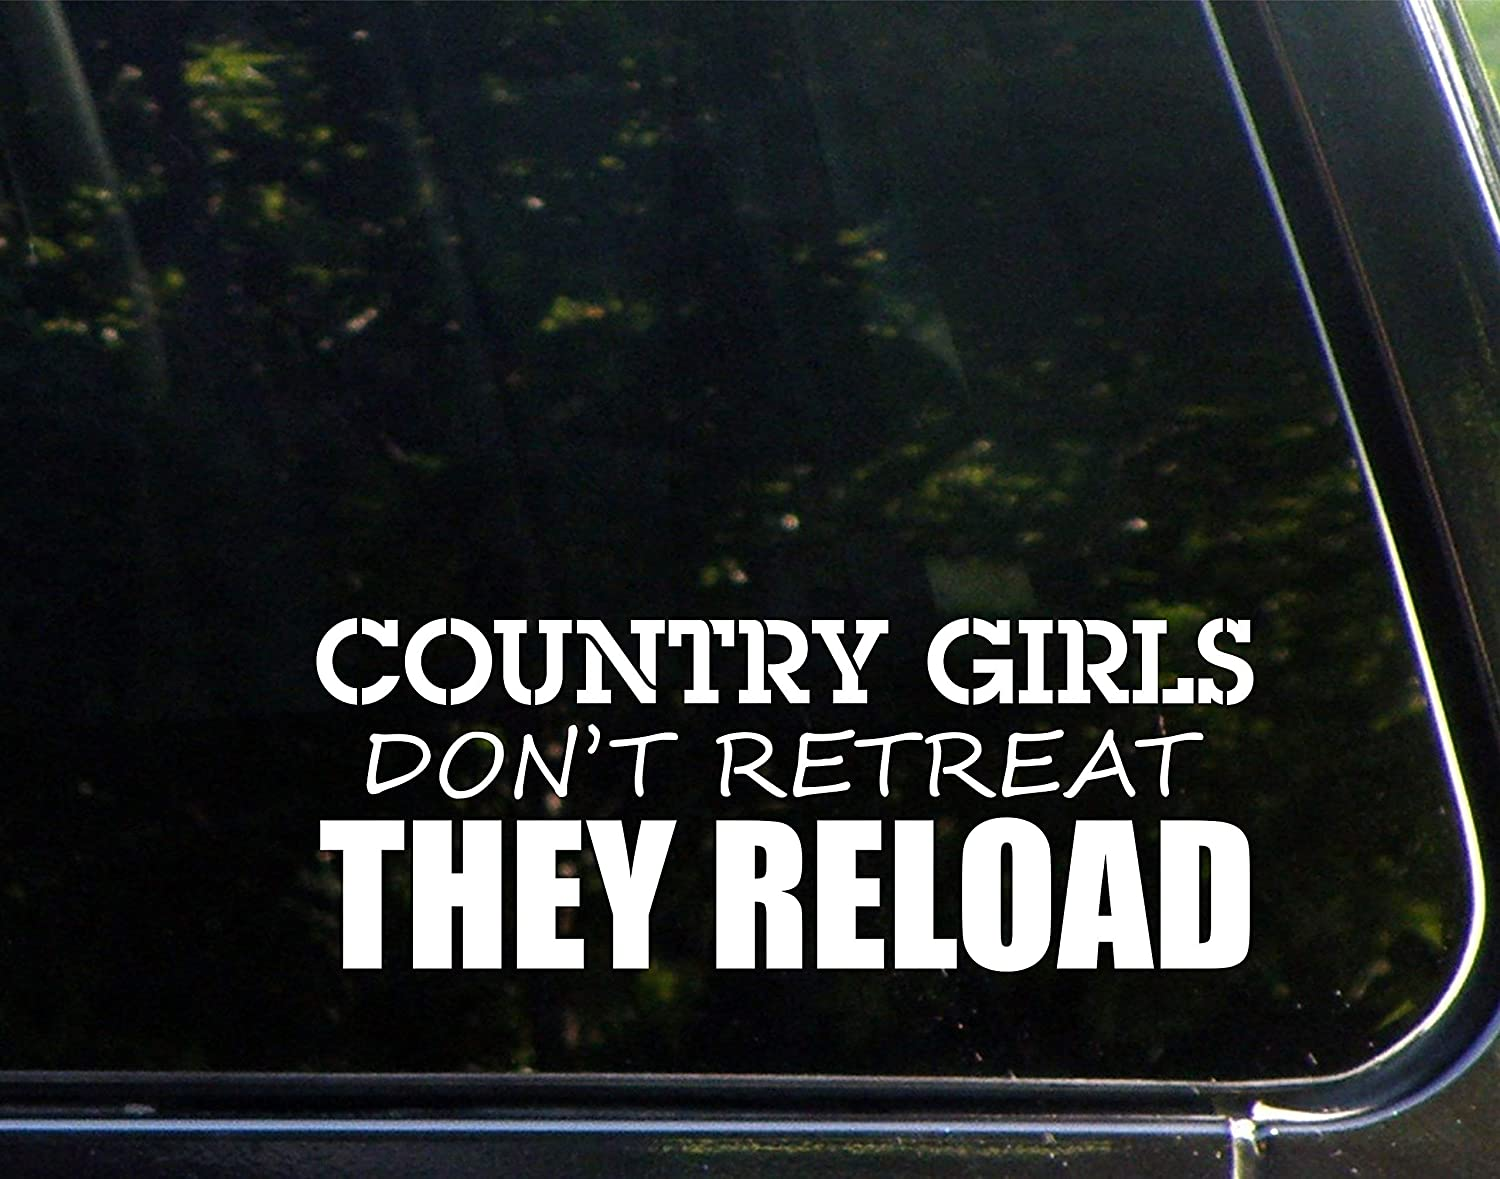 "Diamond Graphics Country Girls Don't Retreat They Reload (9"" x 3-1/4"") Die Cut Decal Bumper Sticker for Windows, Cars, Trucks, Laptops, Etc."